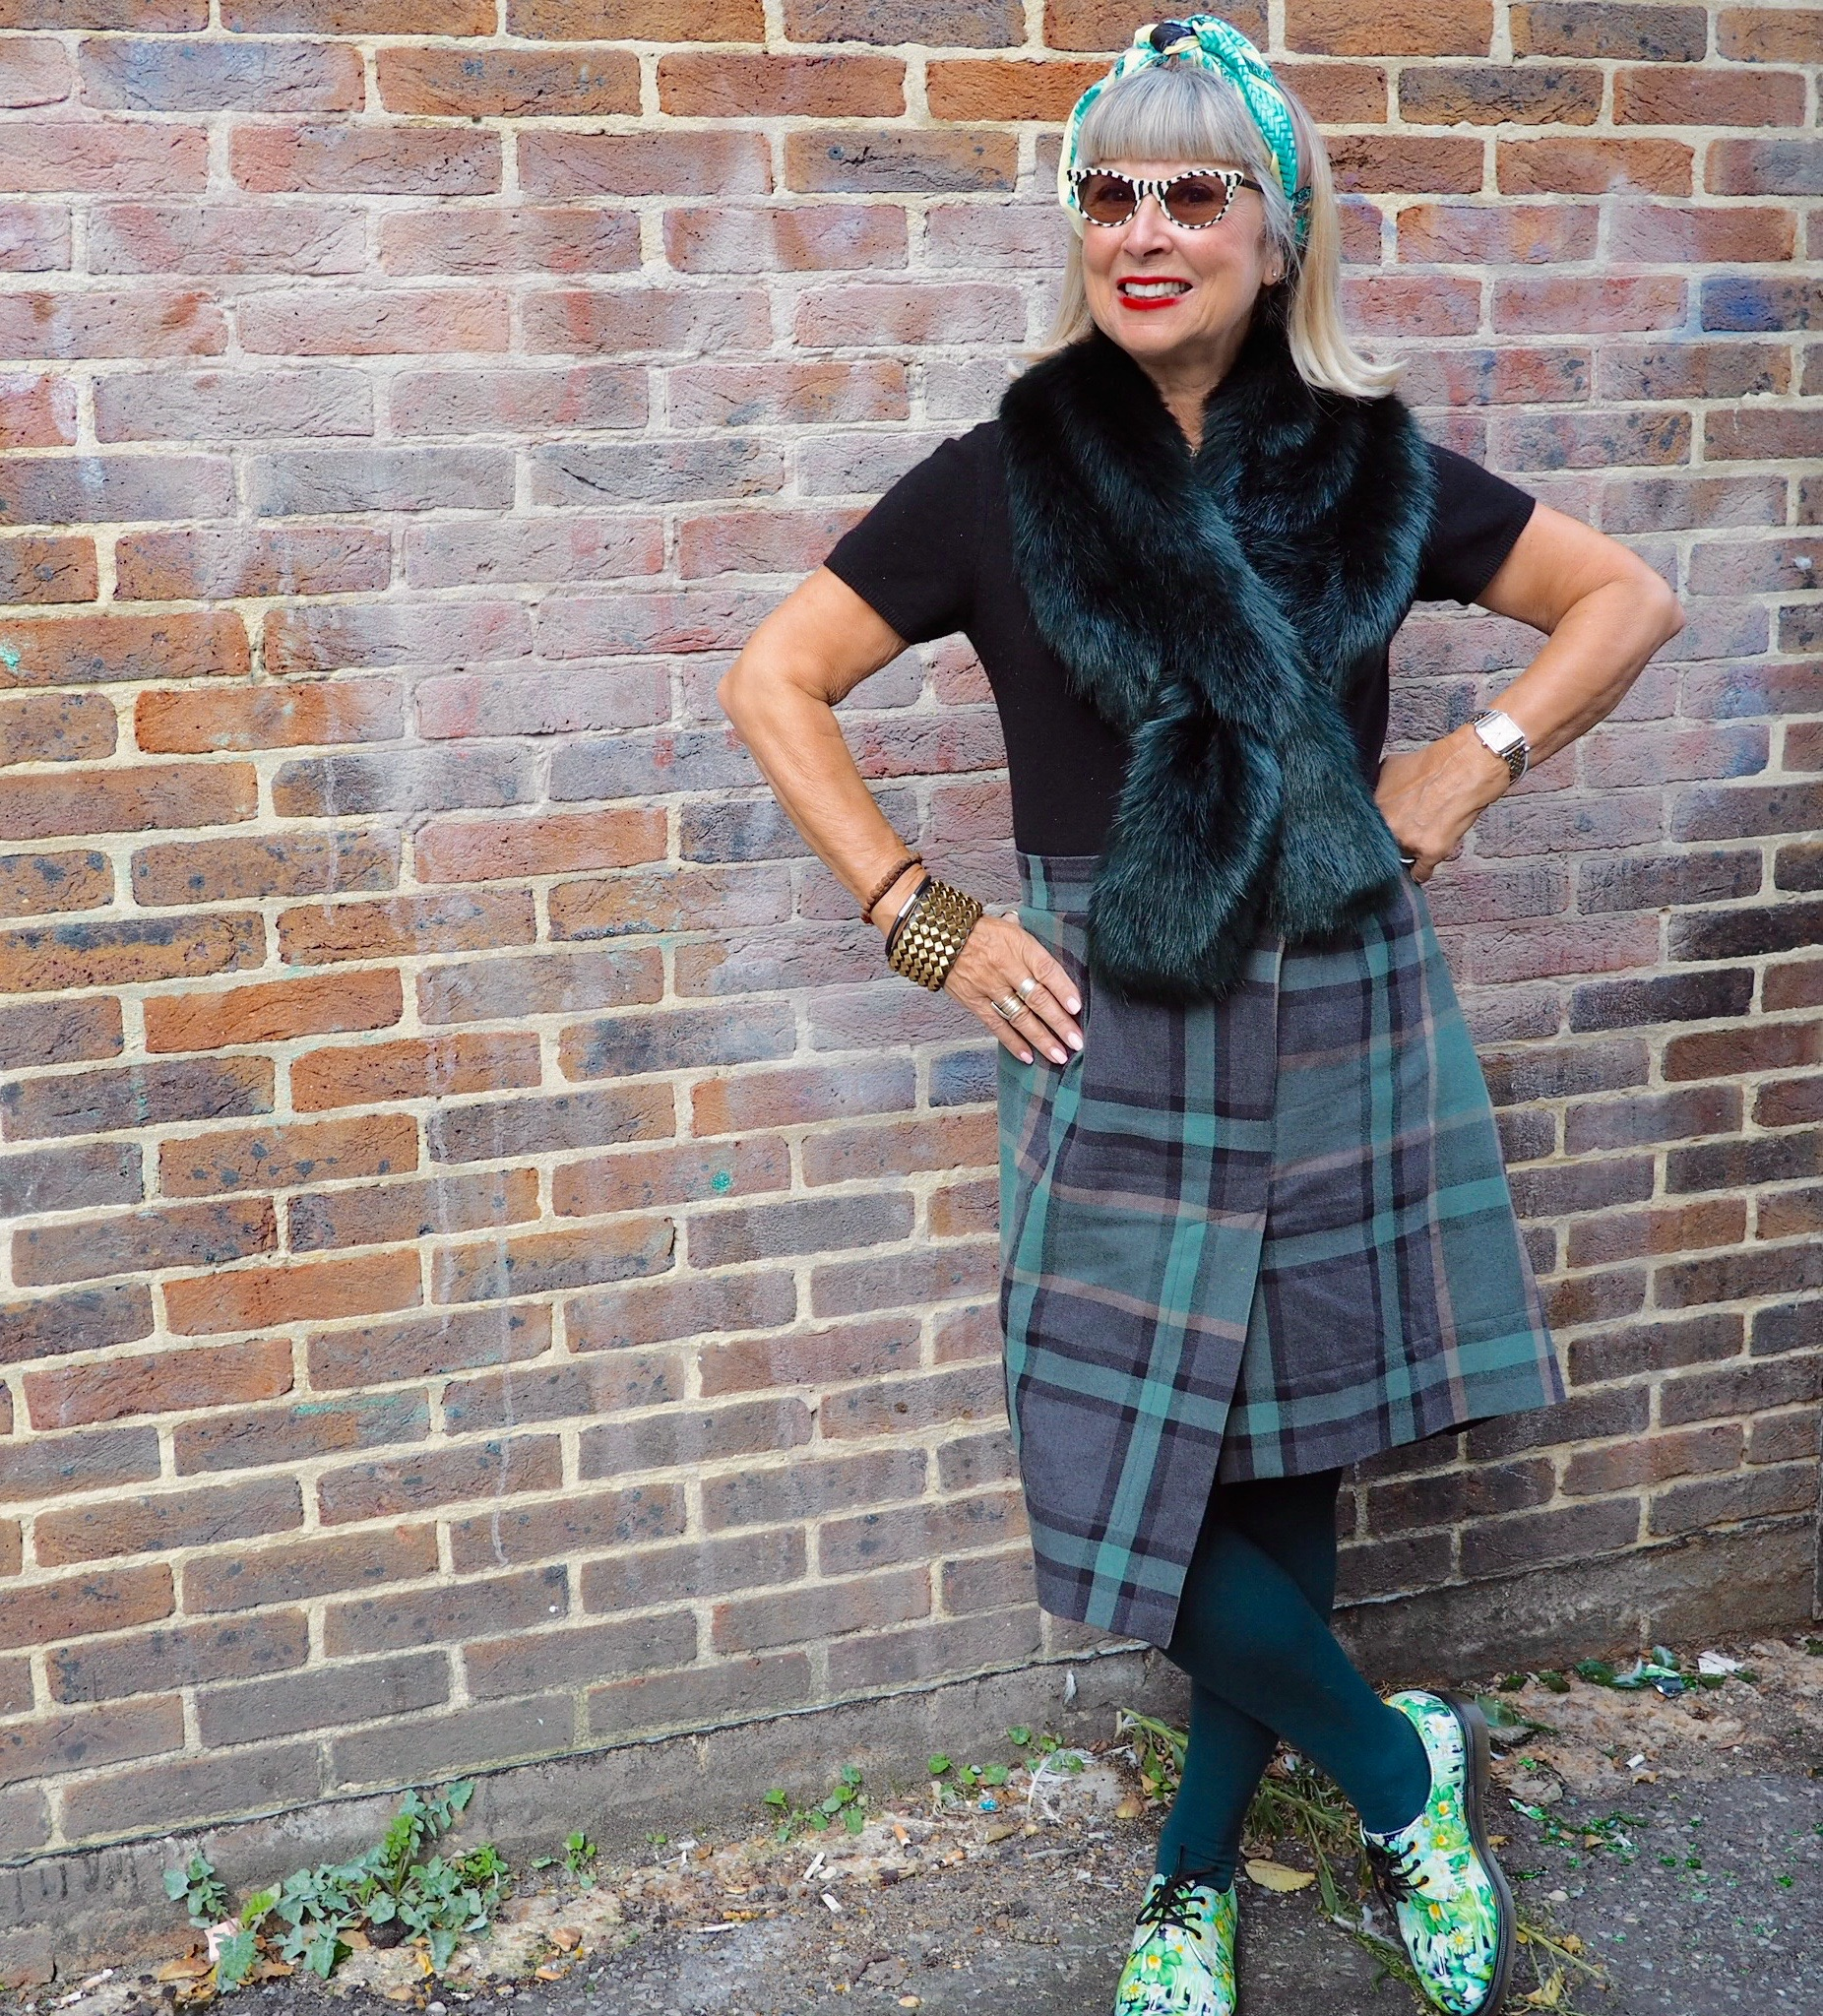 New & old - the faux fur collar completes the green/blue vibe of my outfit.